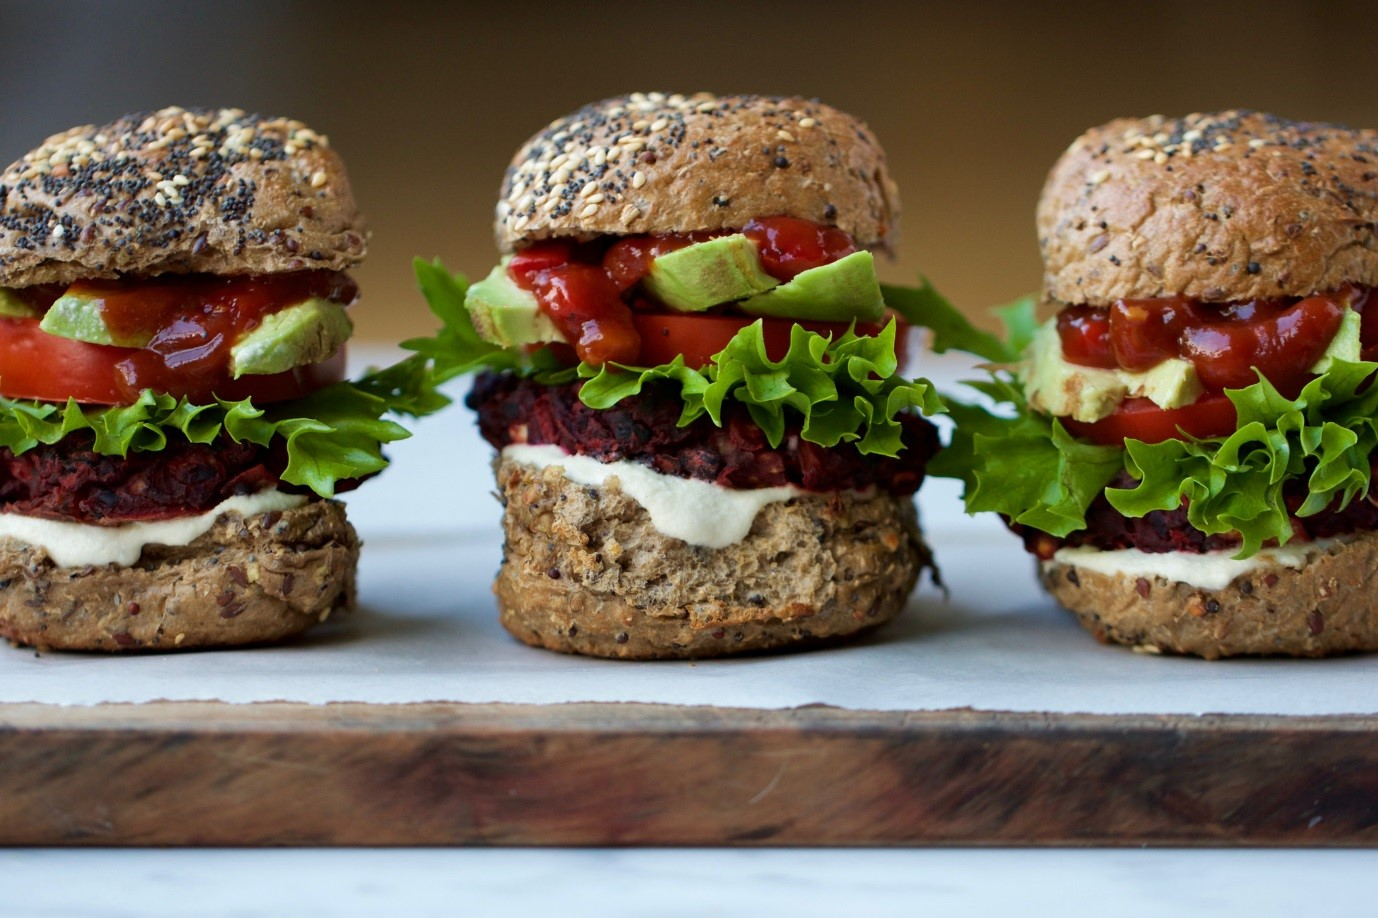 Buffy-Ellen Gill's meatless burger favourite